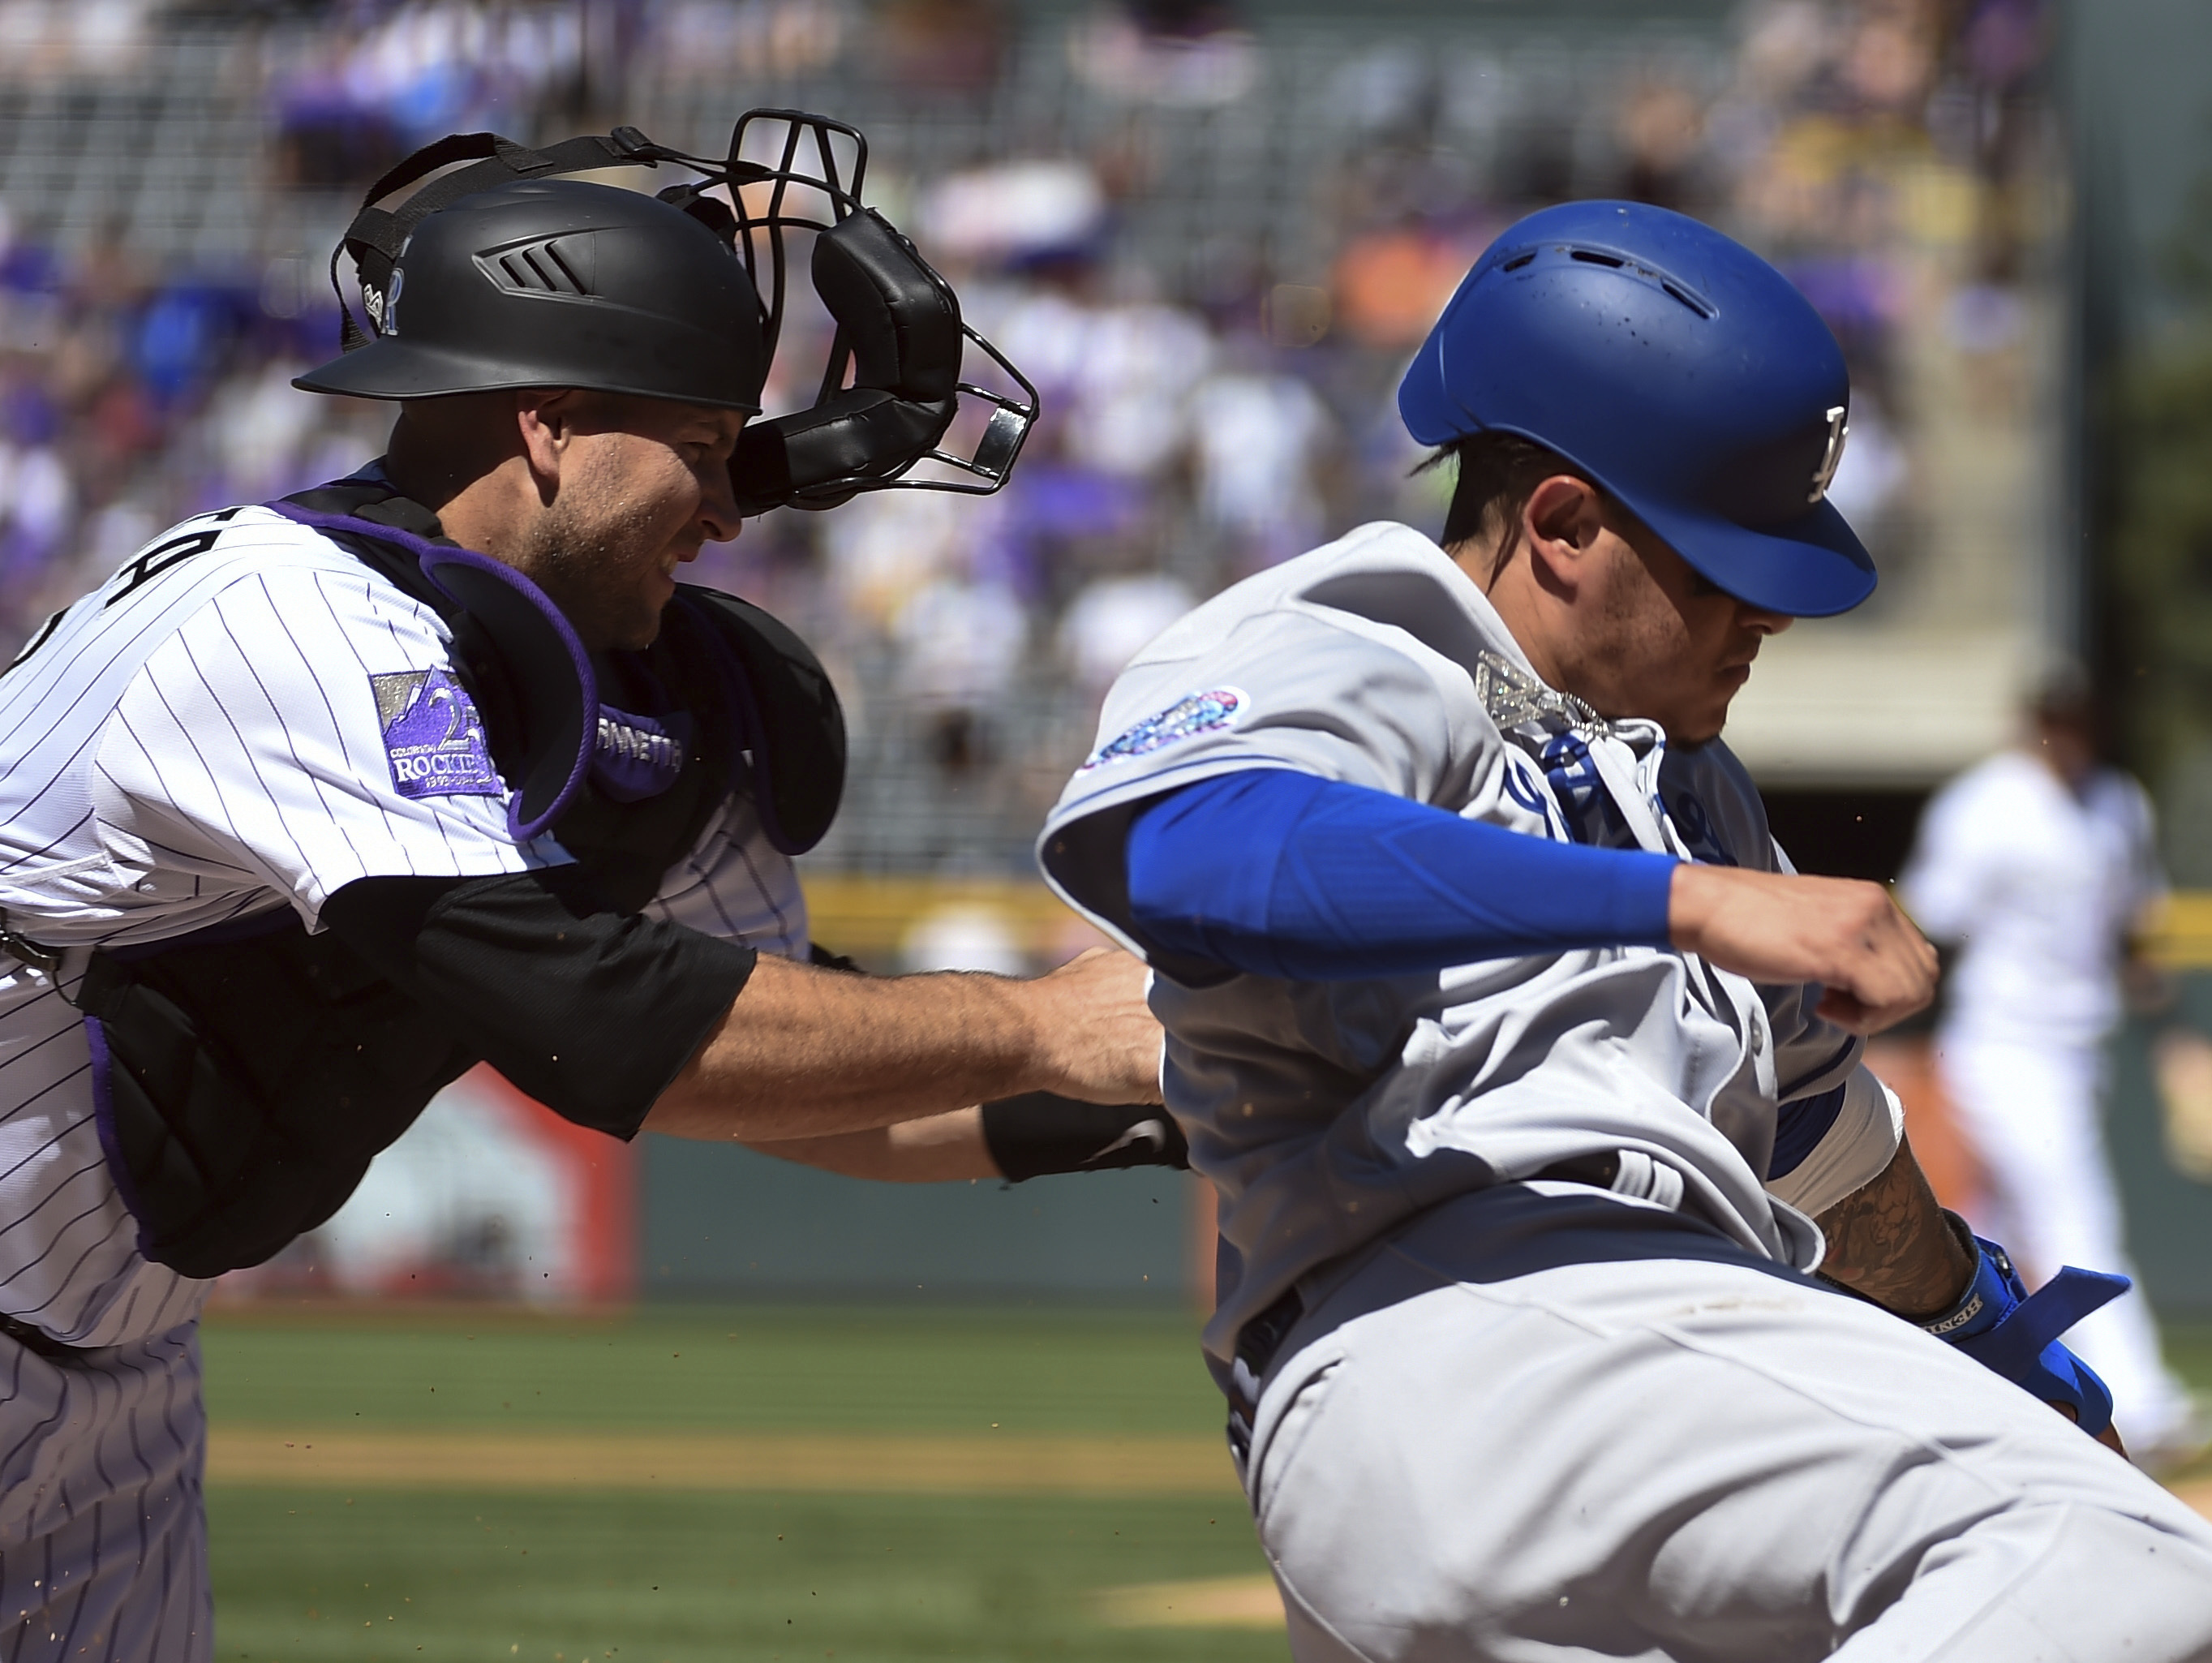 Turner's 4 hits lift Dodgers past NL West-leading Rox 9-6